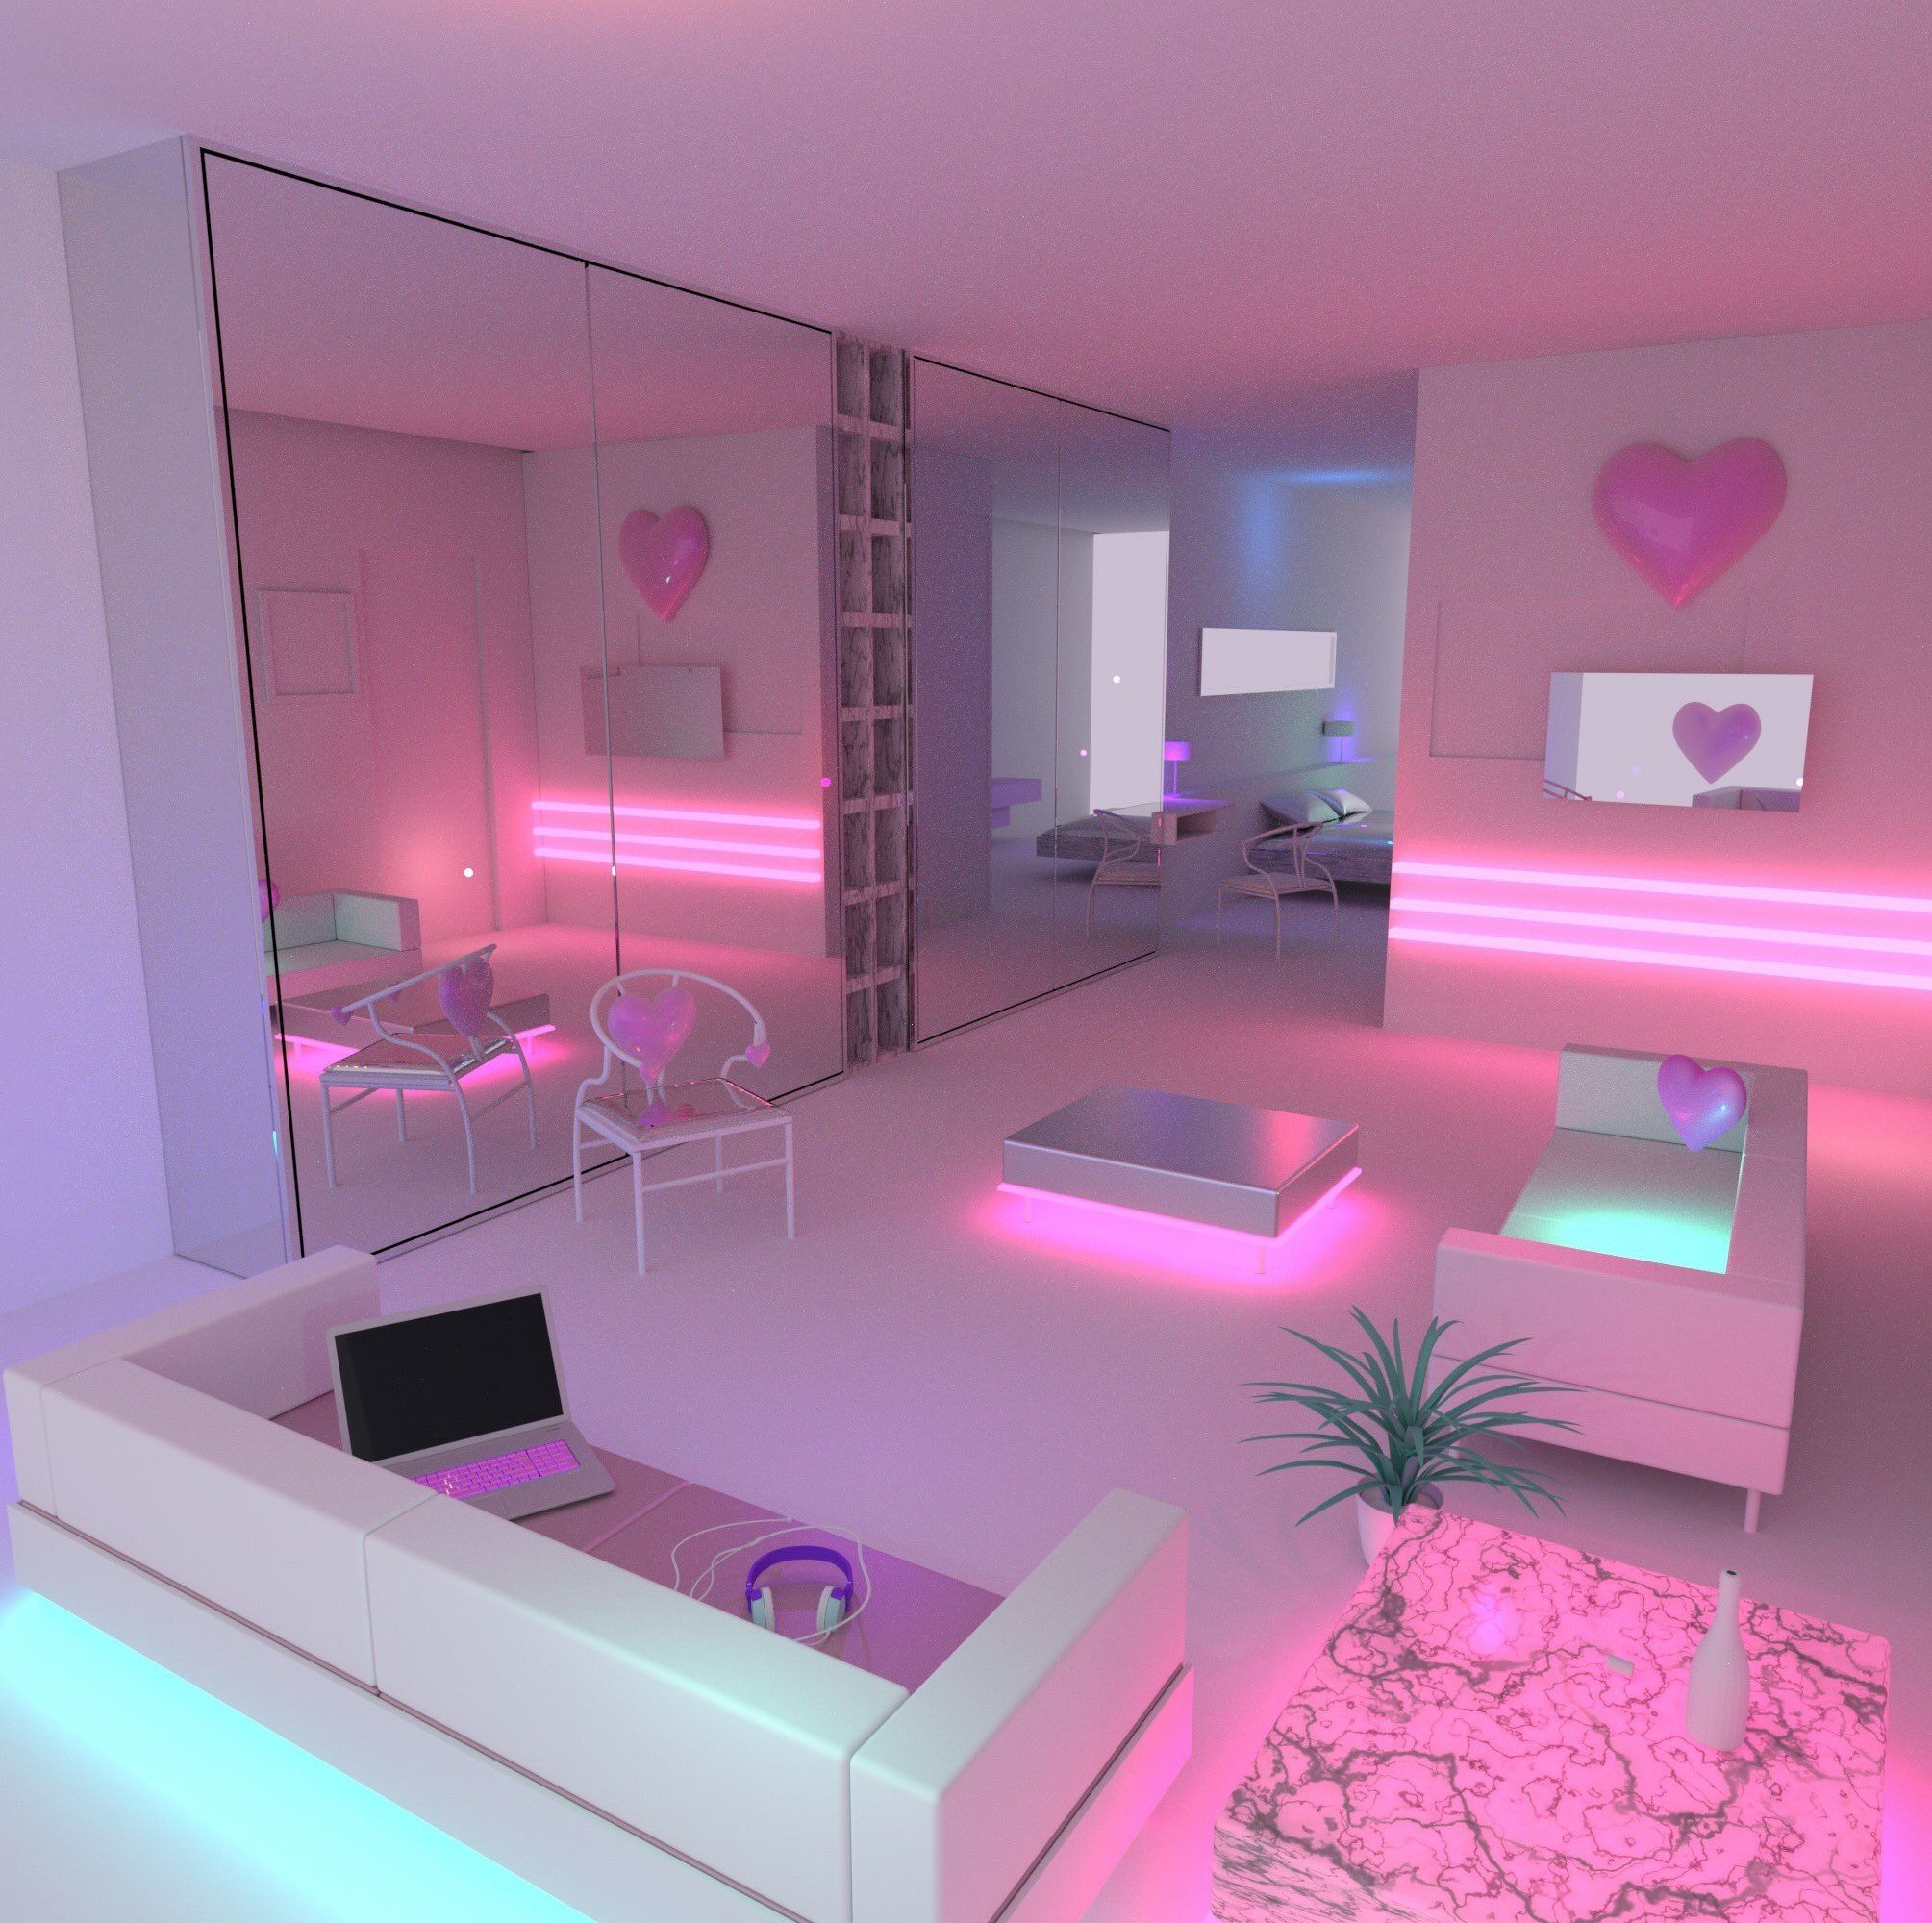 17 Cool Teen Room Ideas: Bedroom Decor, Room Decor, Dream Rooms